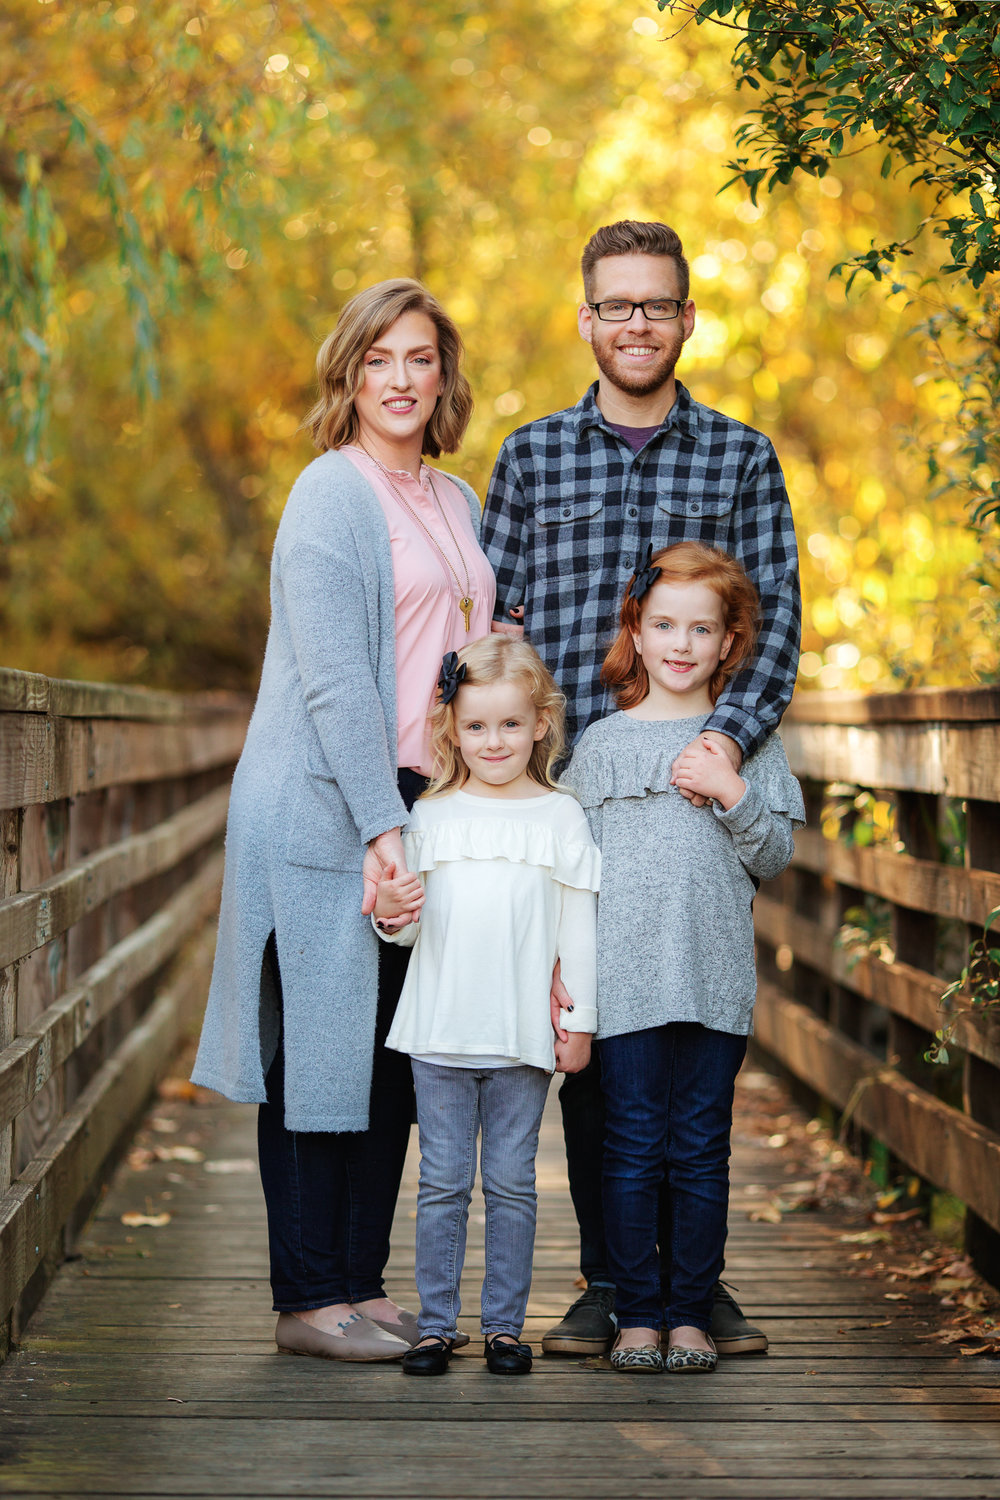 ariellanoellephotography-fall-family-portraits-seattle-monroe-area-family-photography-child-portraiture-highschool-seniors-bellevue-woodinville-lake-sammamish-redmond-1.jpg